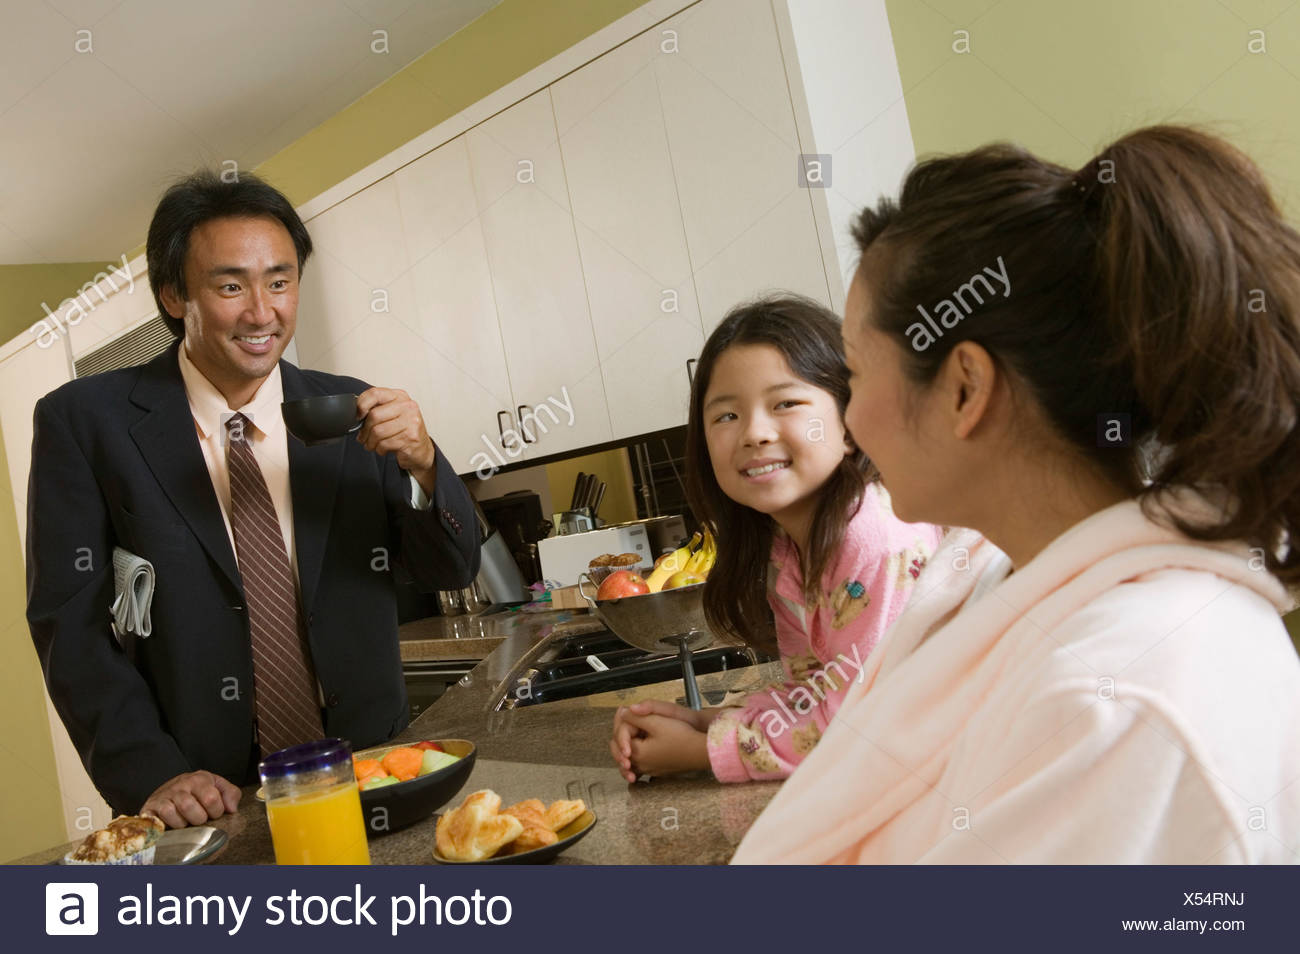 Family at breakfast table, father ready for work - Stock Image